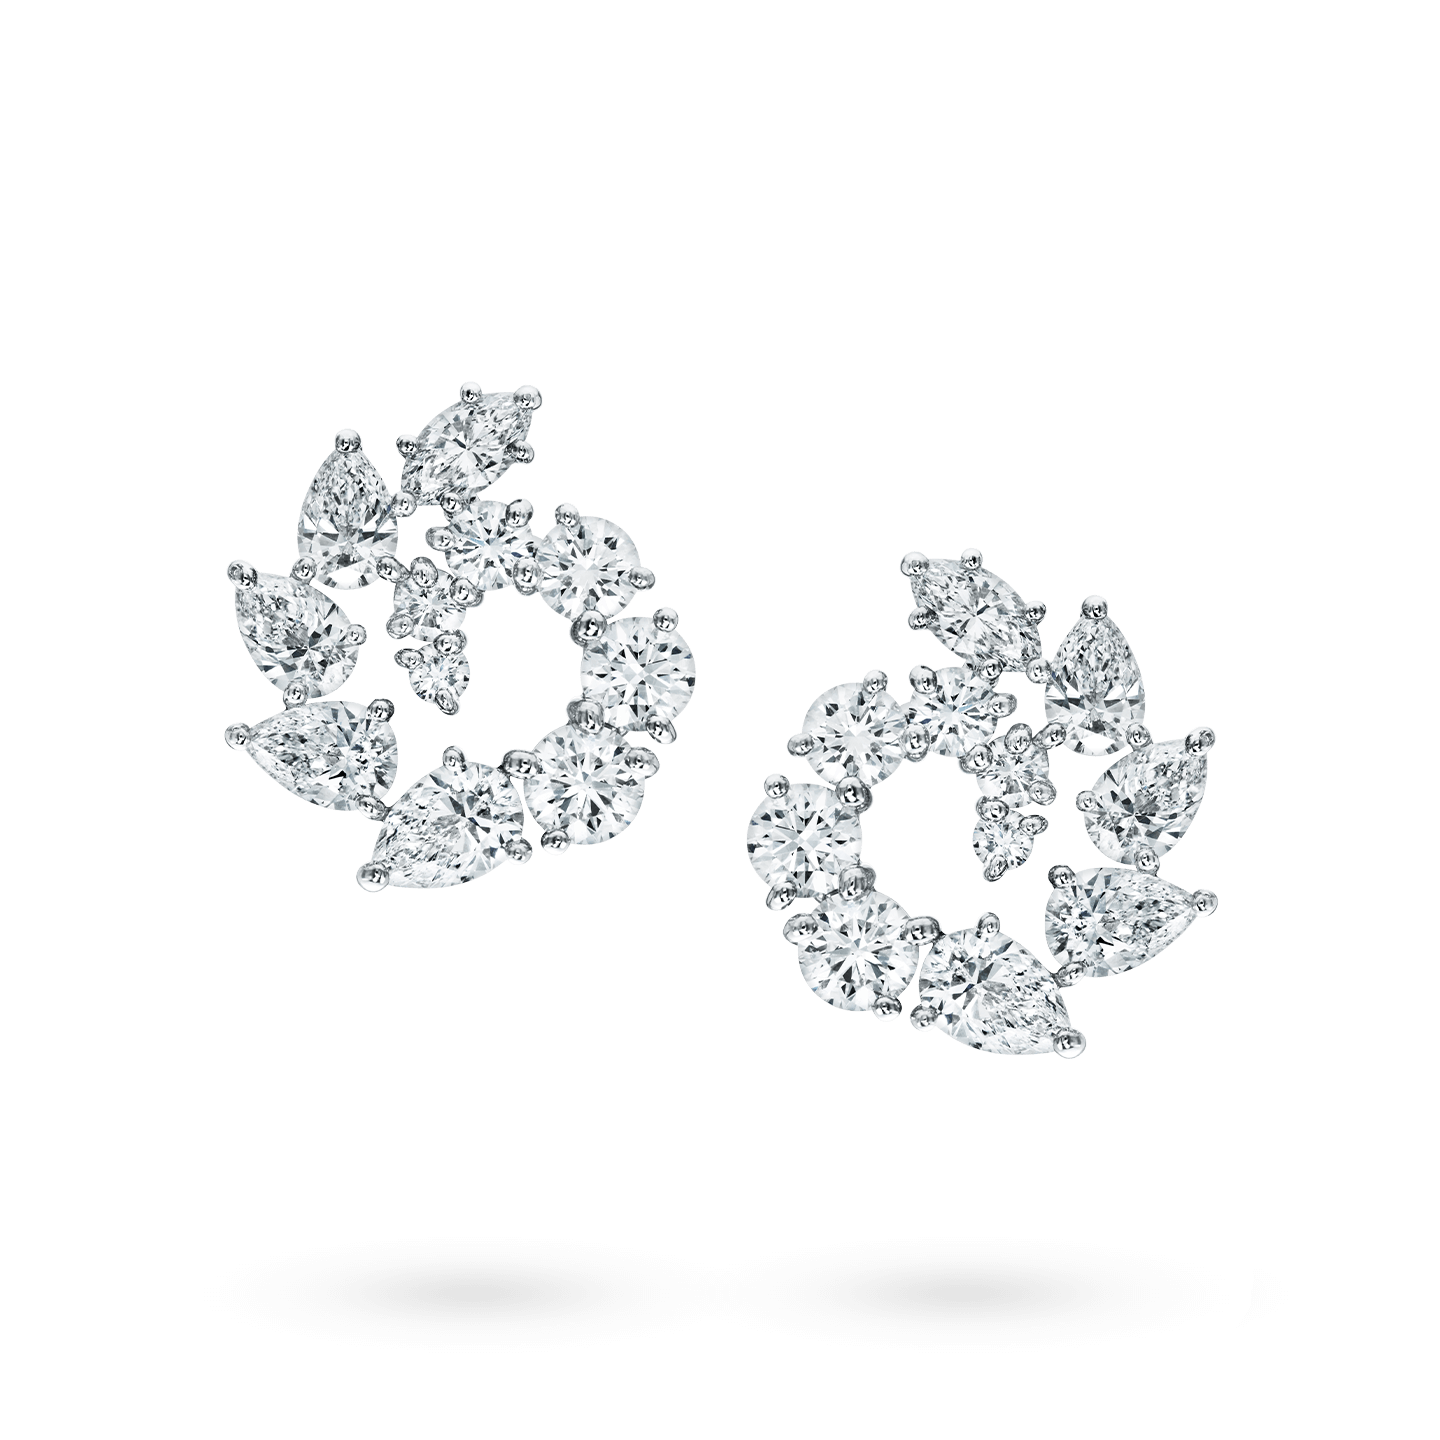 Open Cluster Large Diamond Earrings, Product Image 1